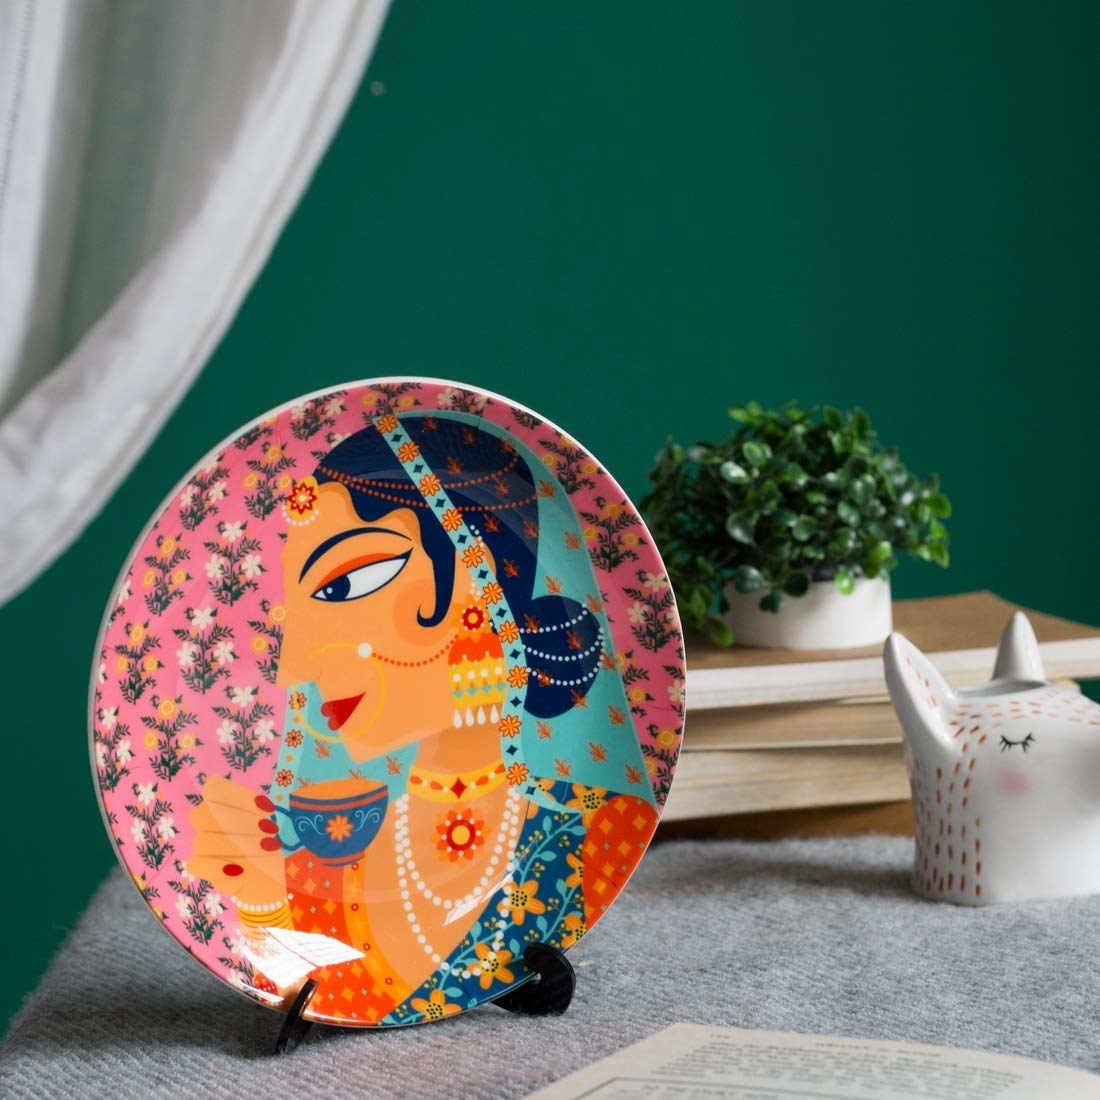 A colourful wall plate with a princess on it